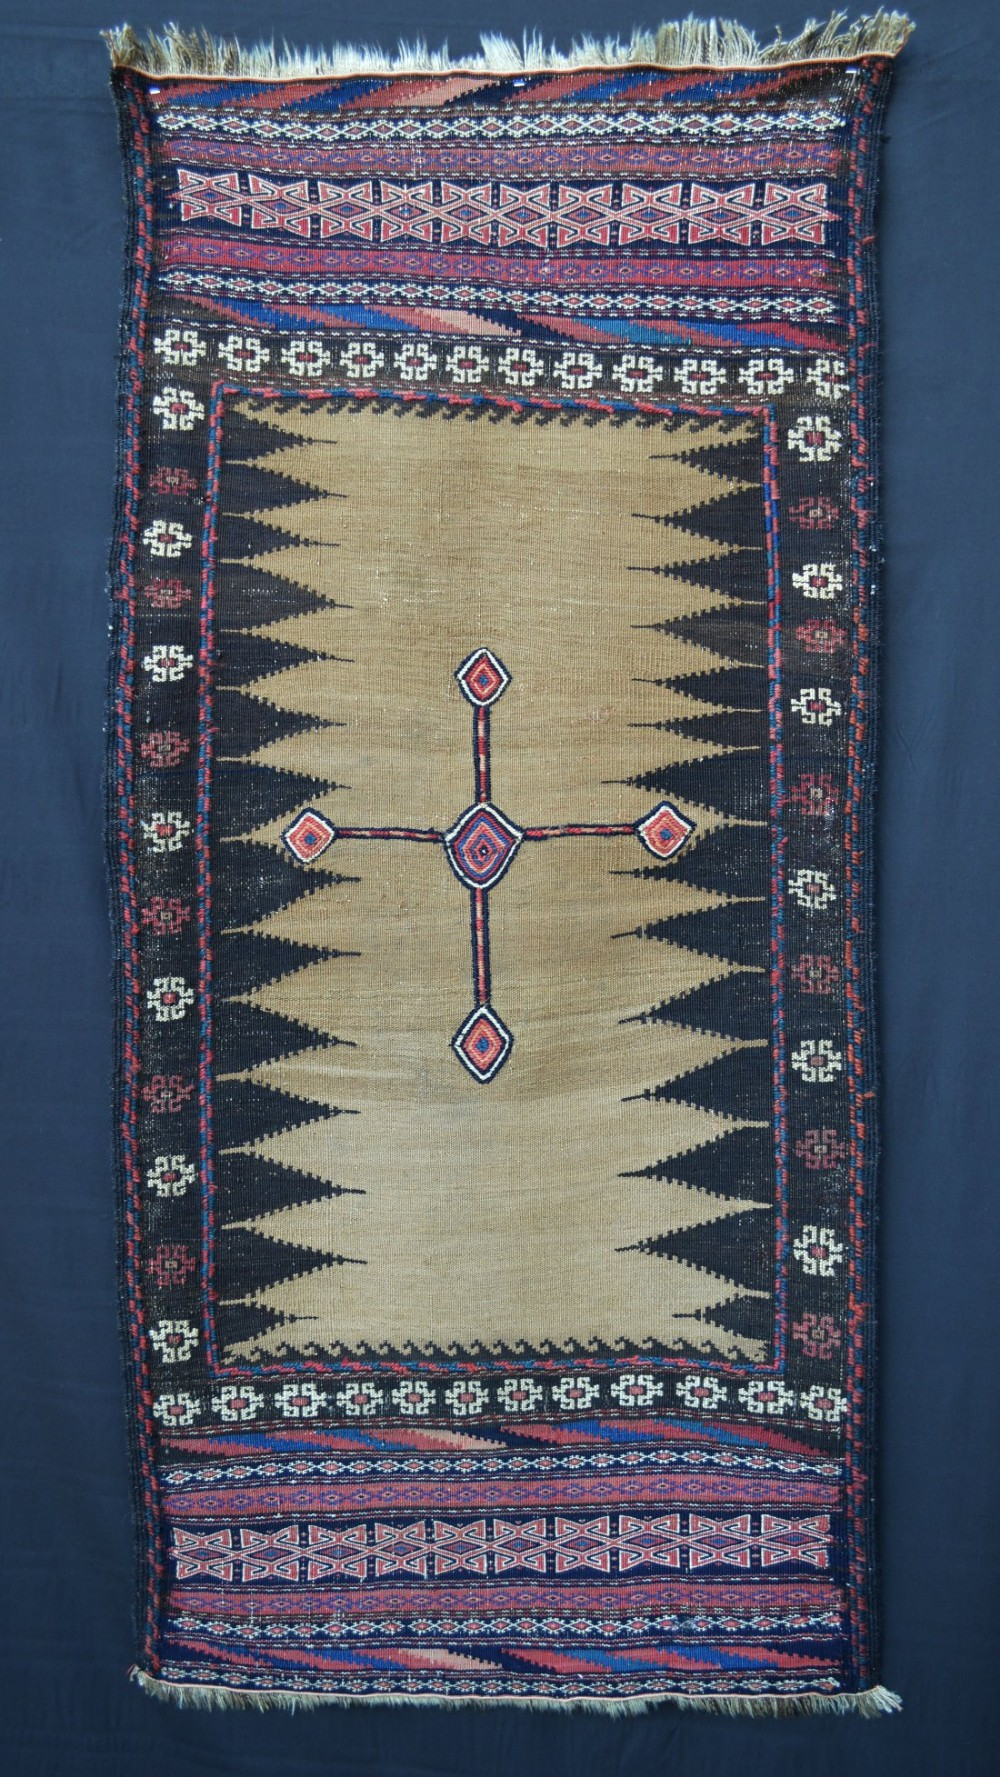 antique sofreh dining flatweave timuri tribes western afghanistan